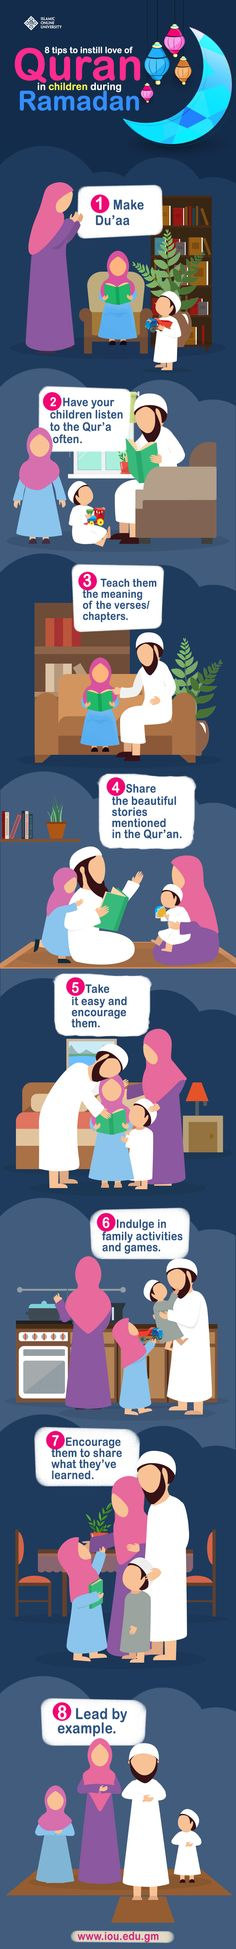 8 Tips to Instill the Love of Qur'an in Your Children's Heart - IOU Blog